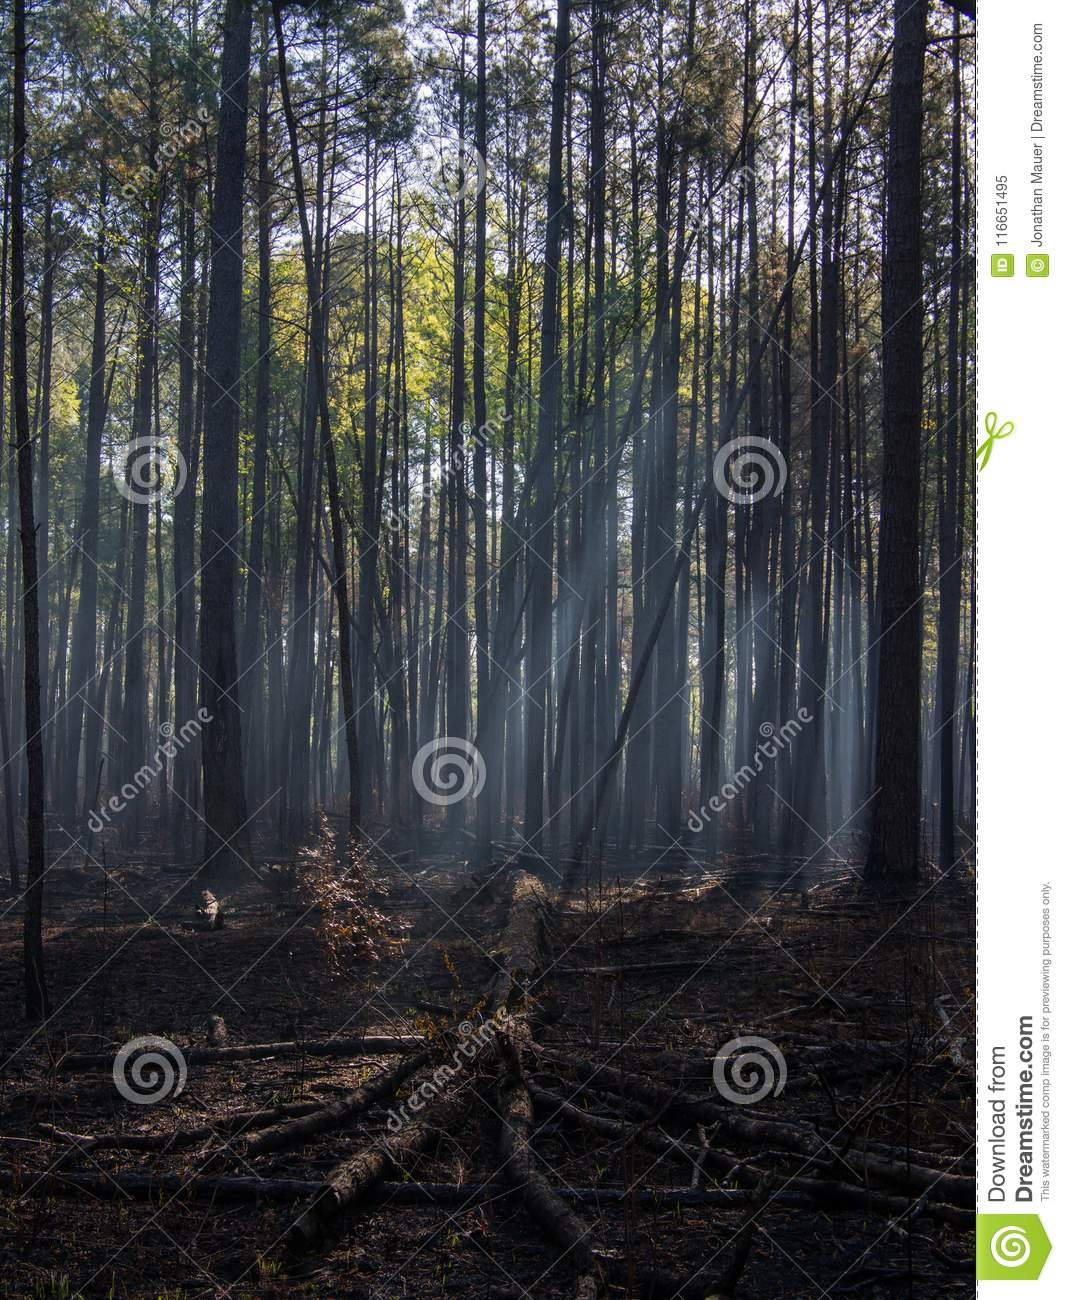 Sunlight Through the Trees of a Charred Forest after Controlled Burn